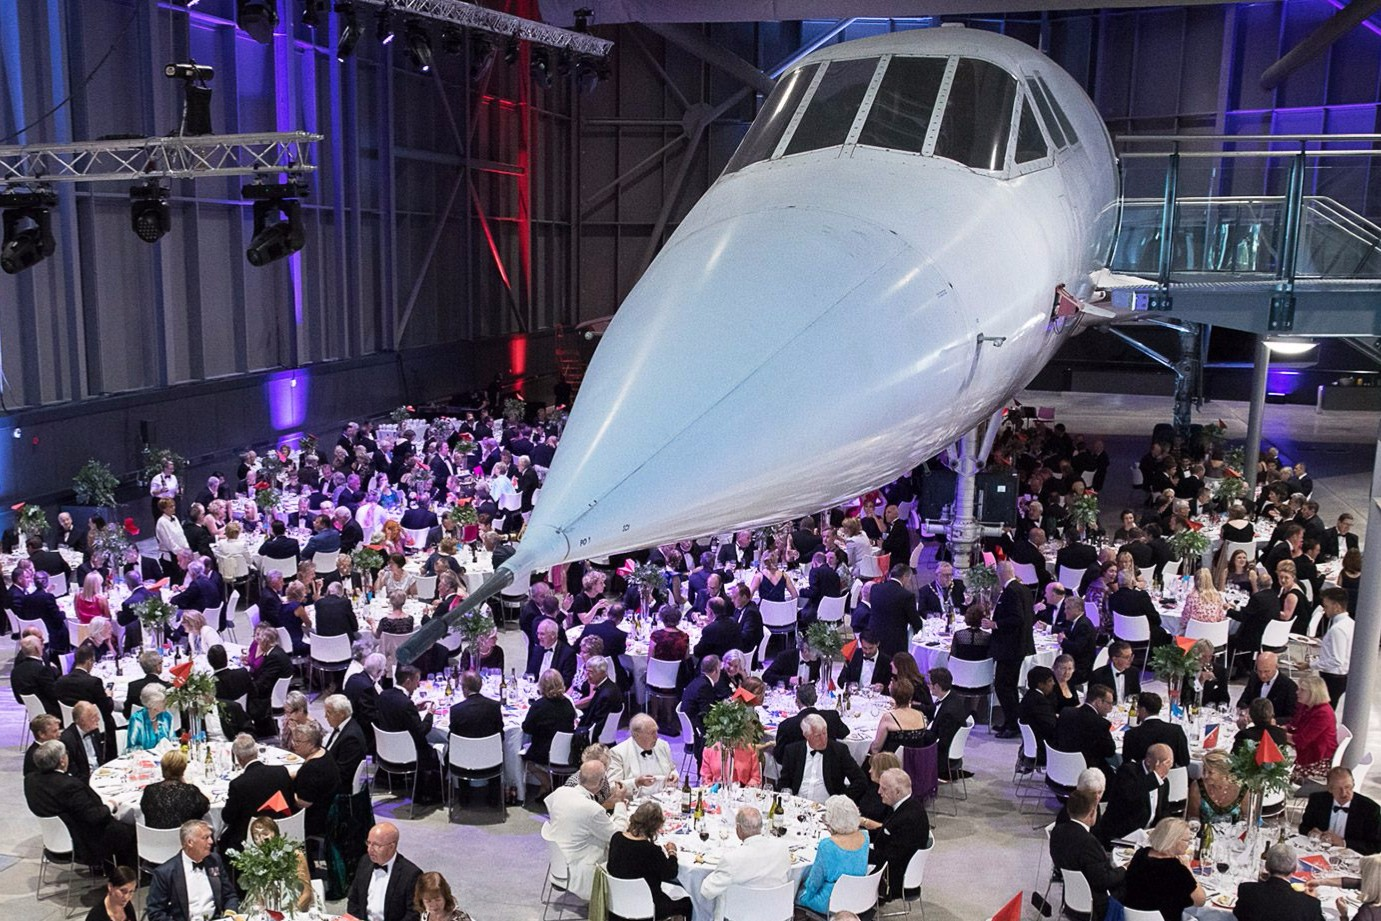 Hangar Plane Dine Under A Suspended Concorde Plane At This Aerospace